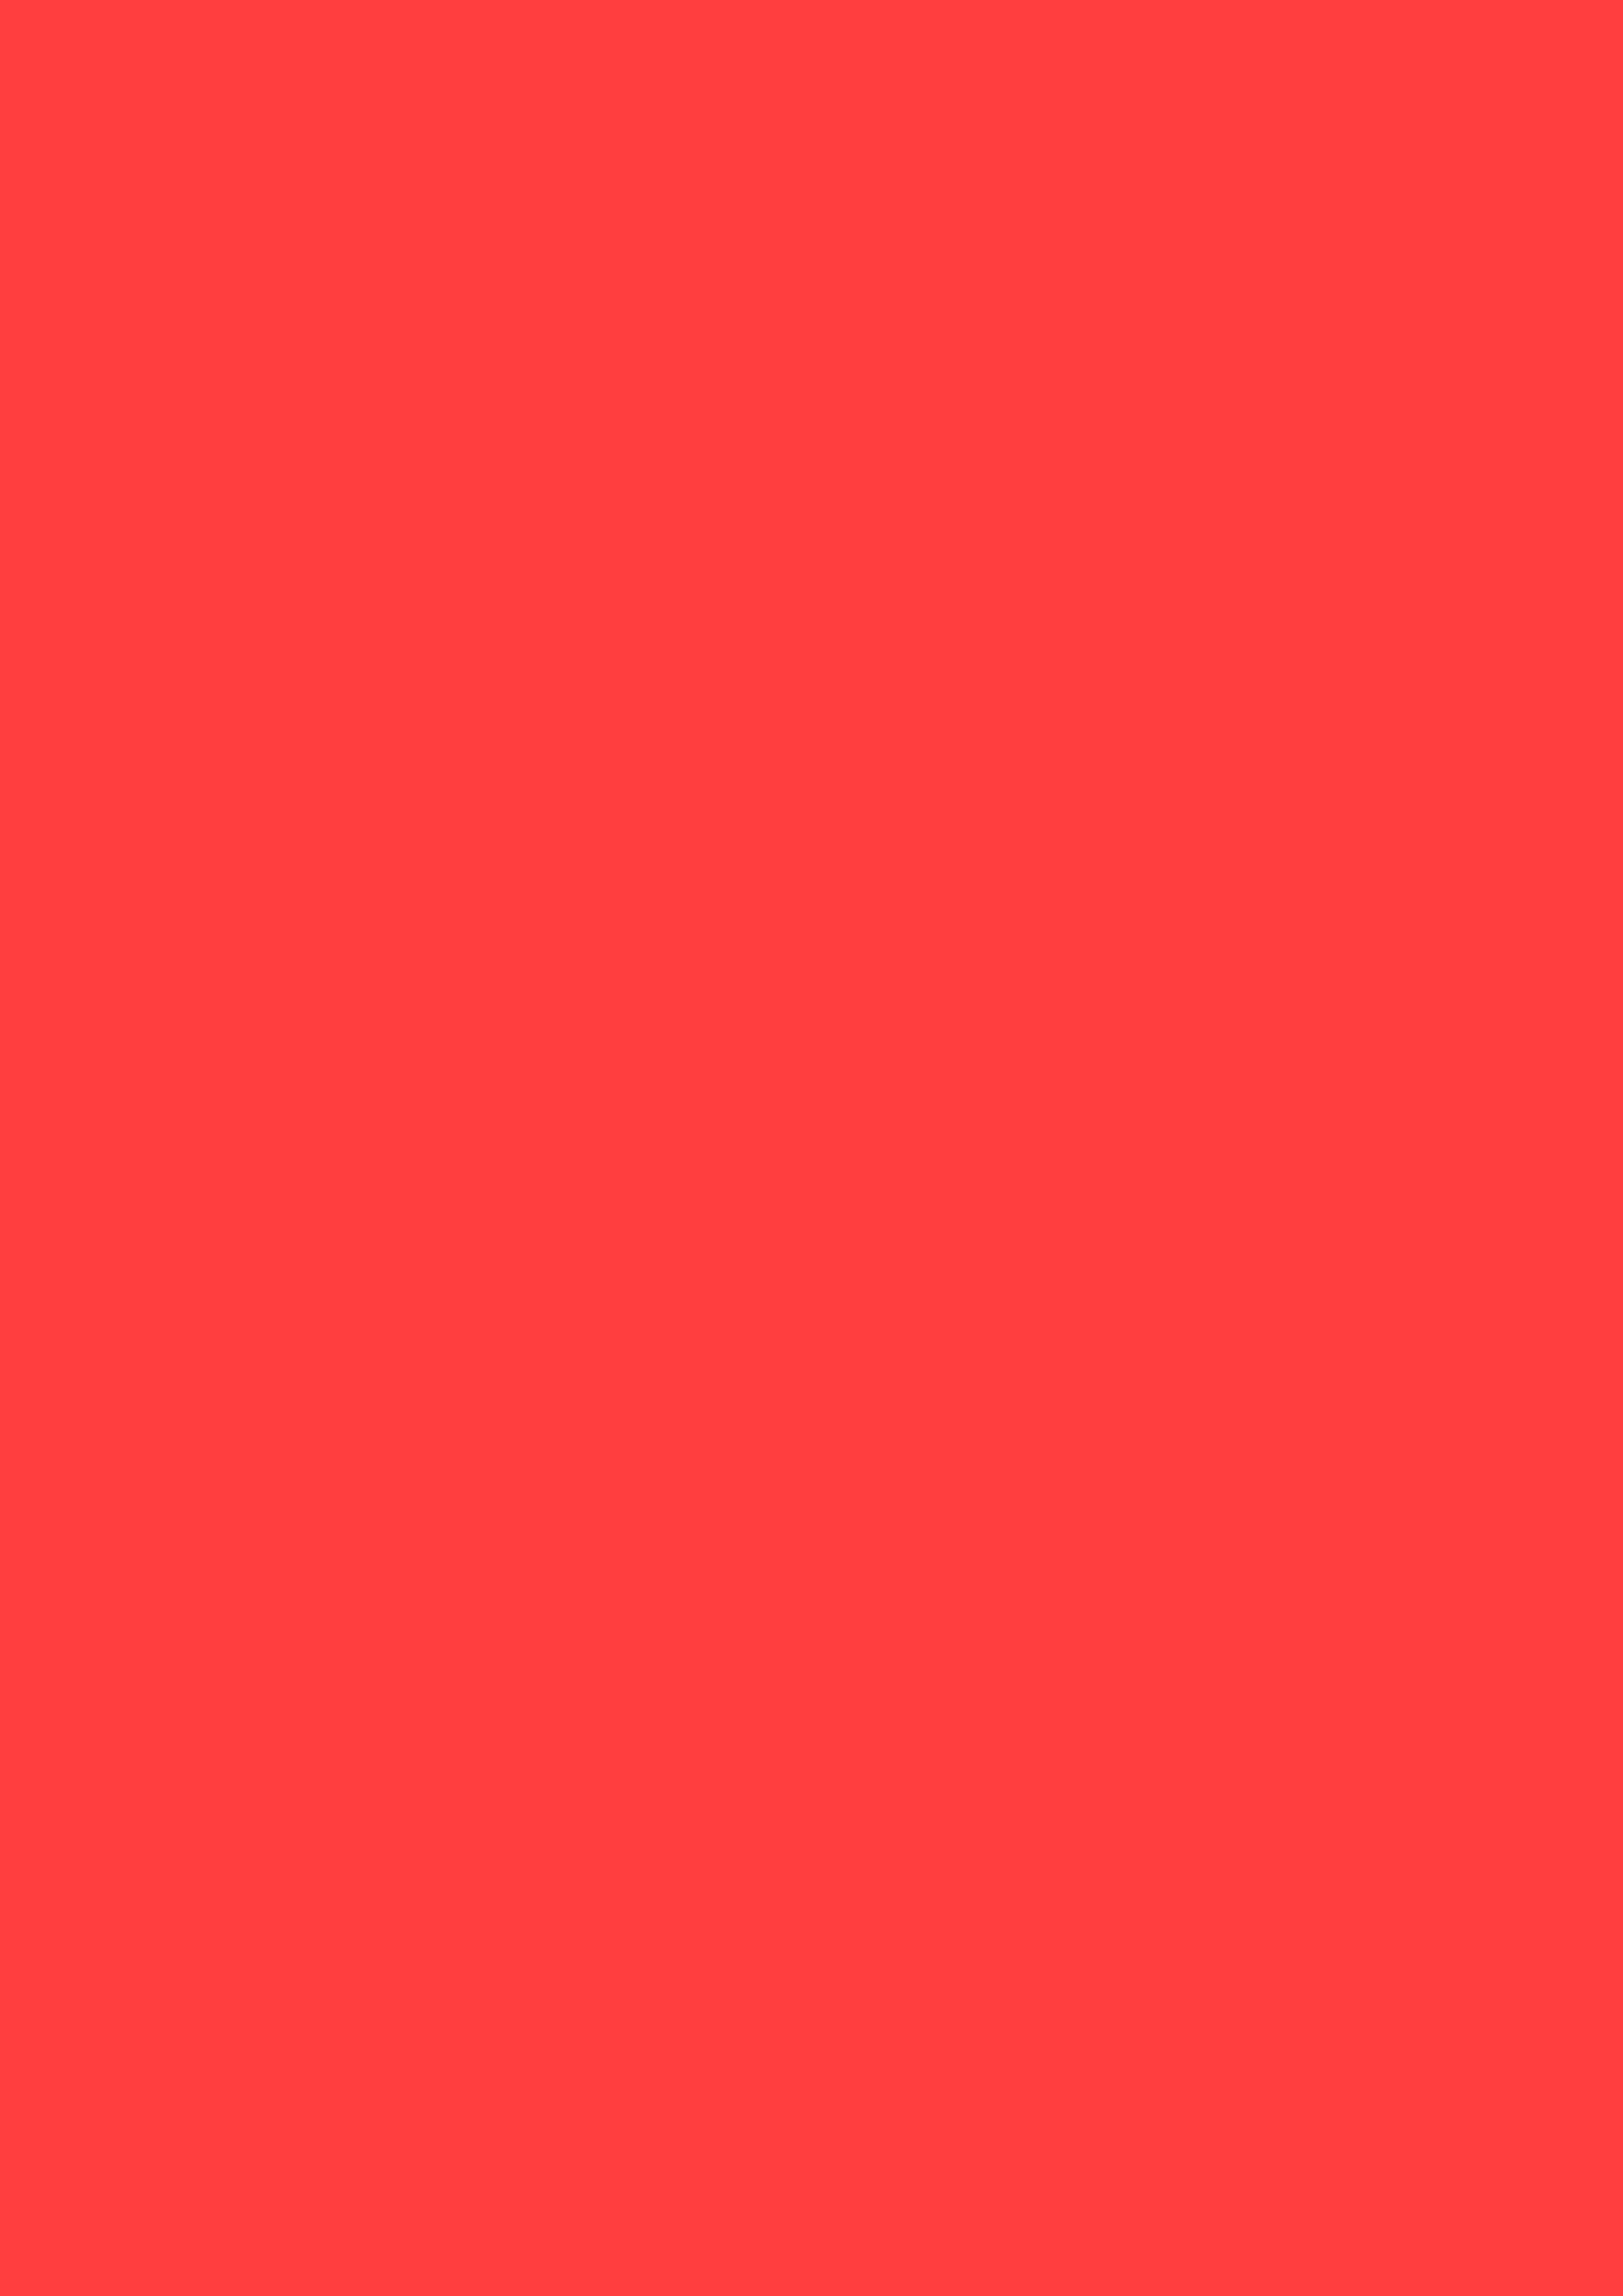 2480x3508 Coral Red Solid Color Background